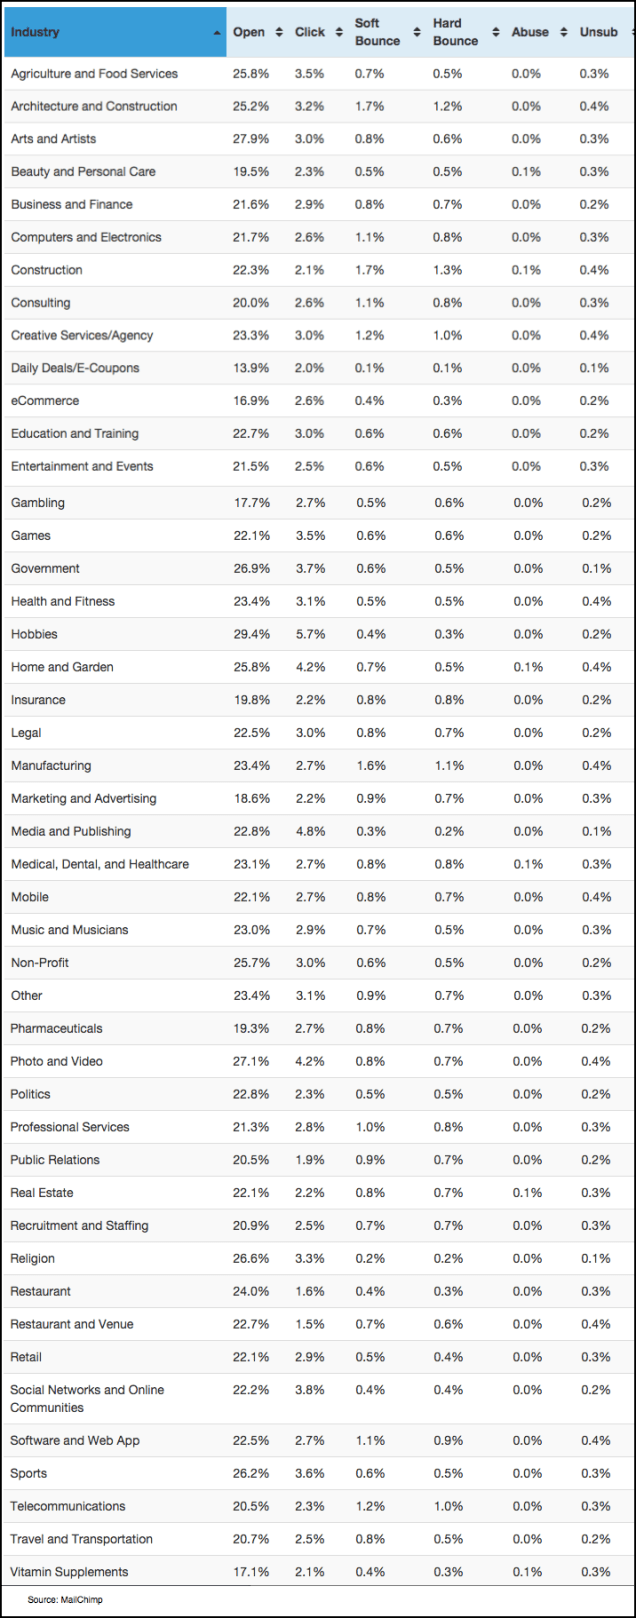 Industry Avg Unsubscribe Rate MailChimp_FINAL